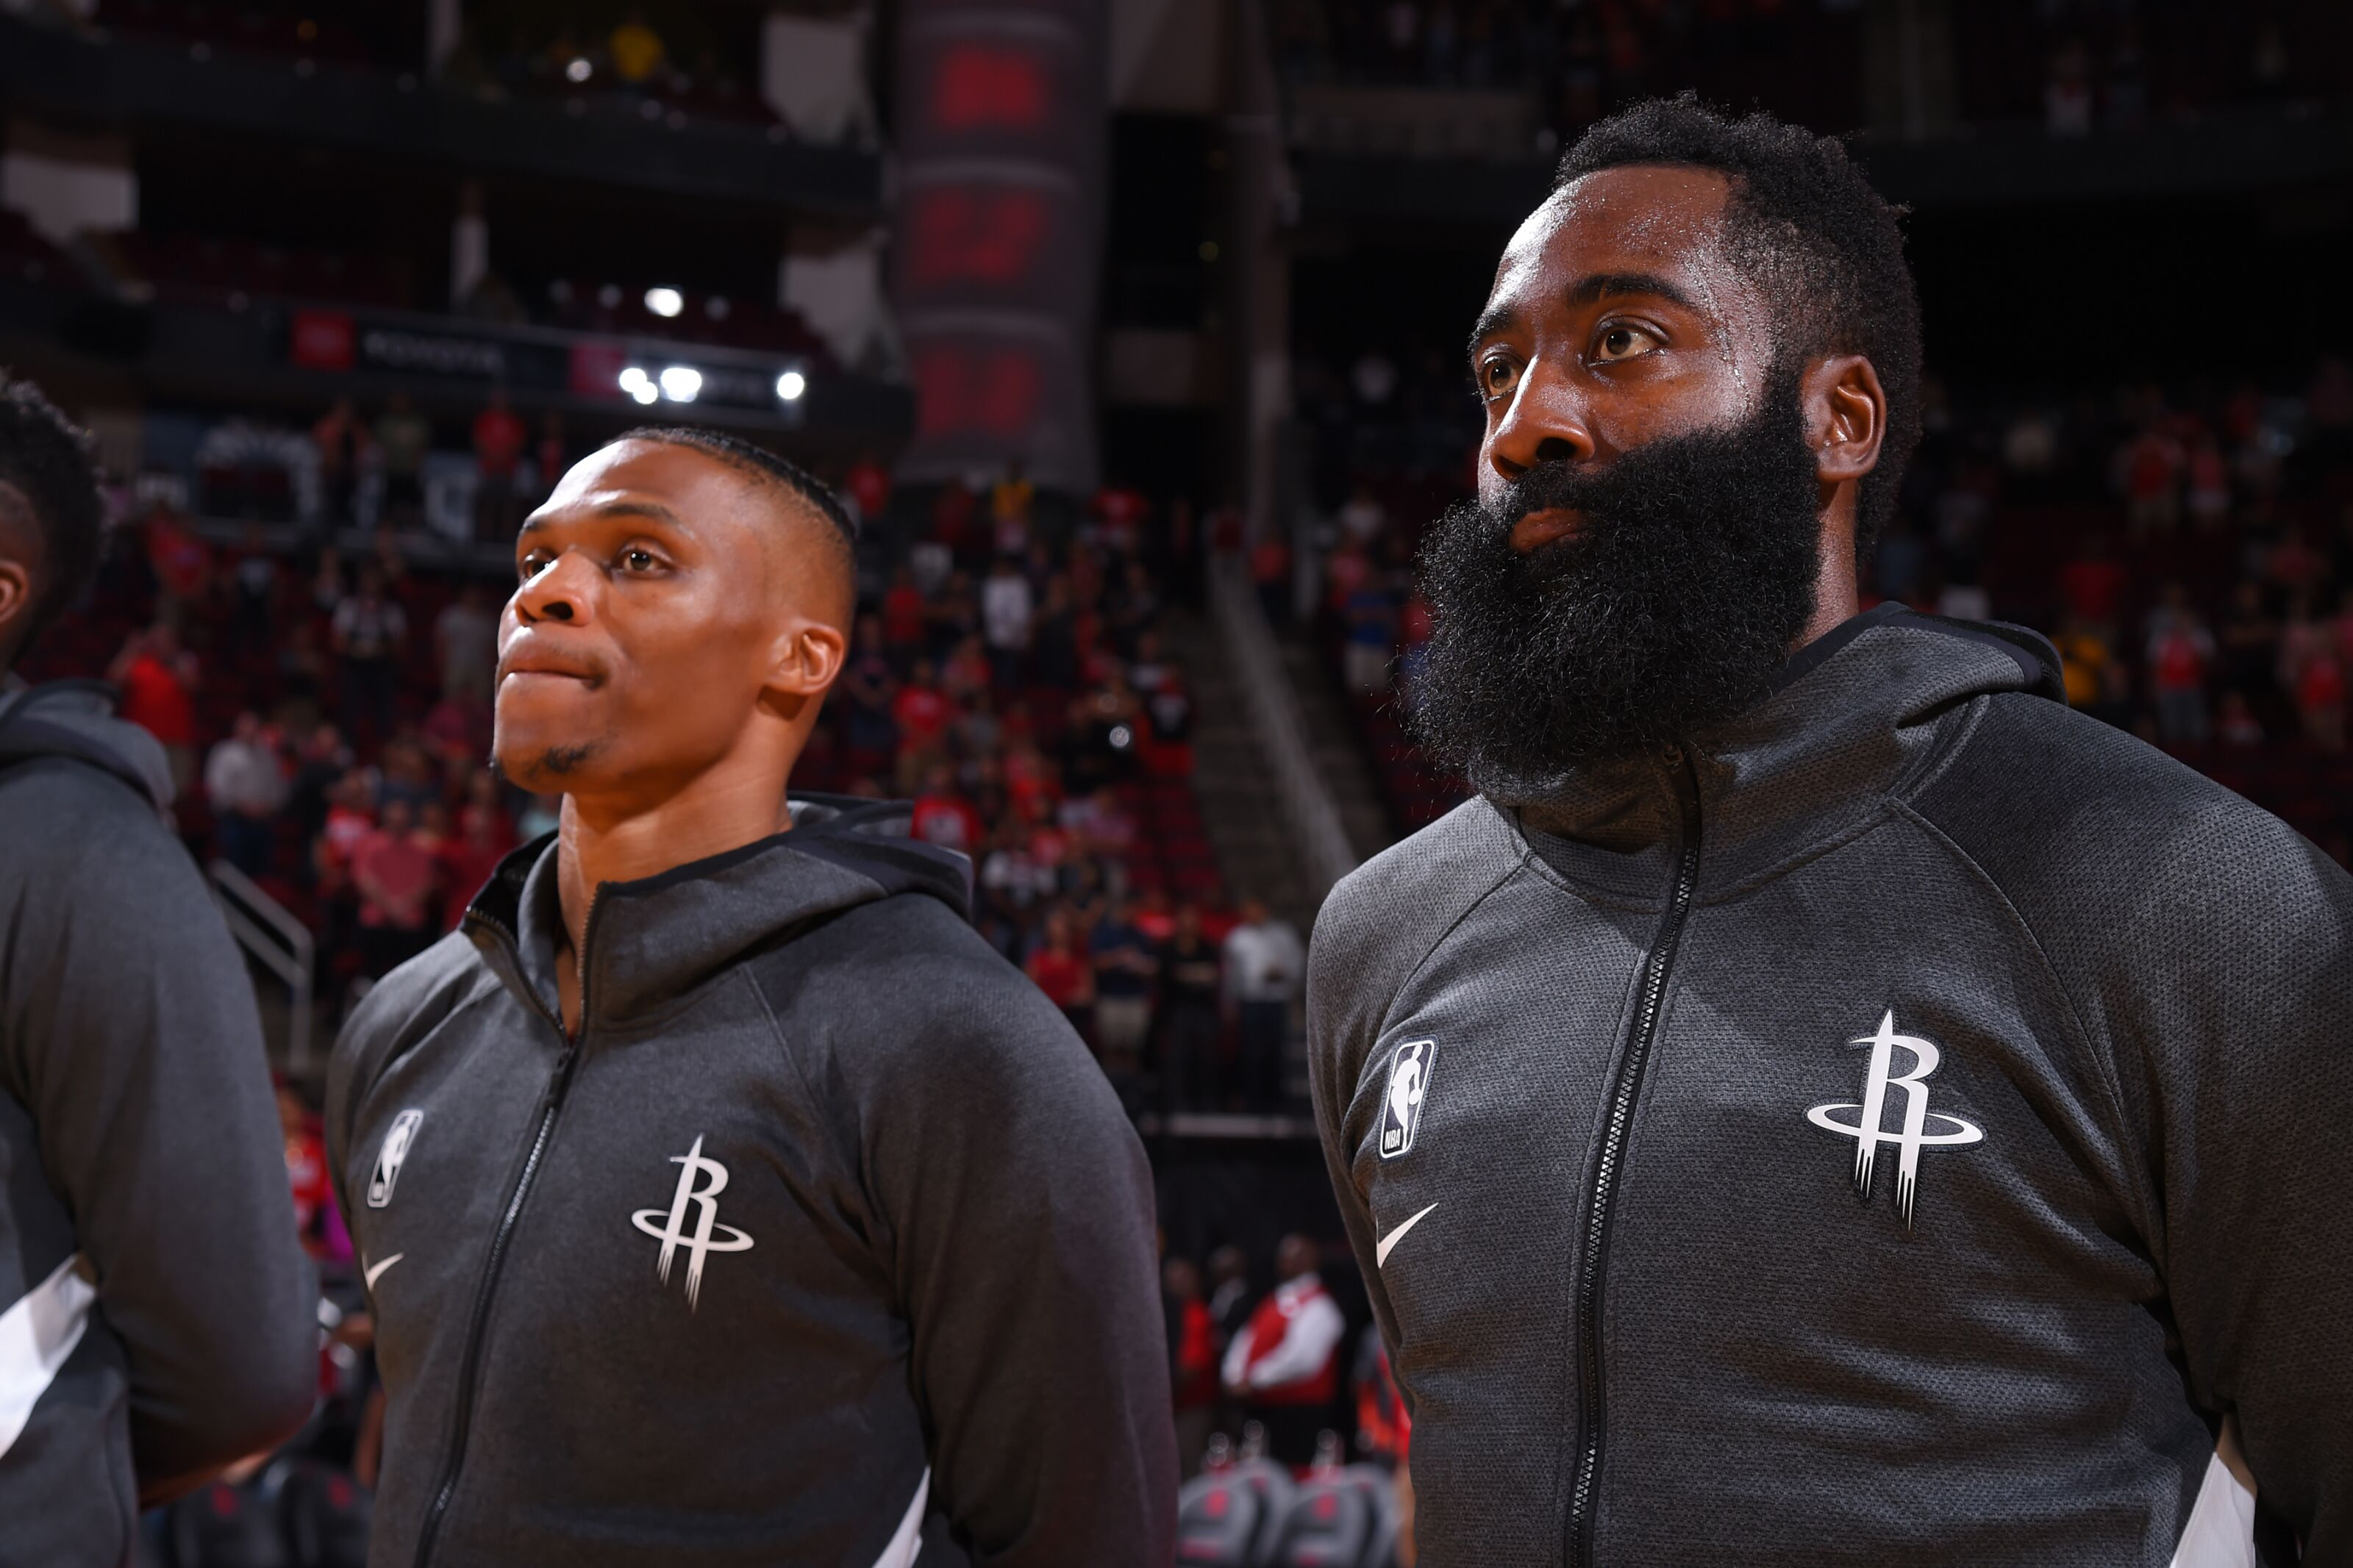 NBA Season Preview 2019-20: Every team's biggest question